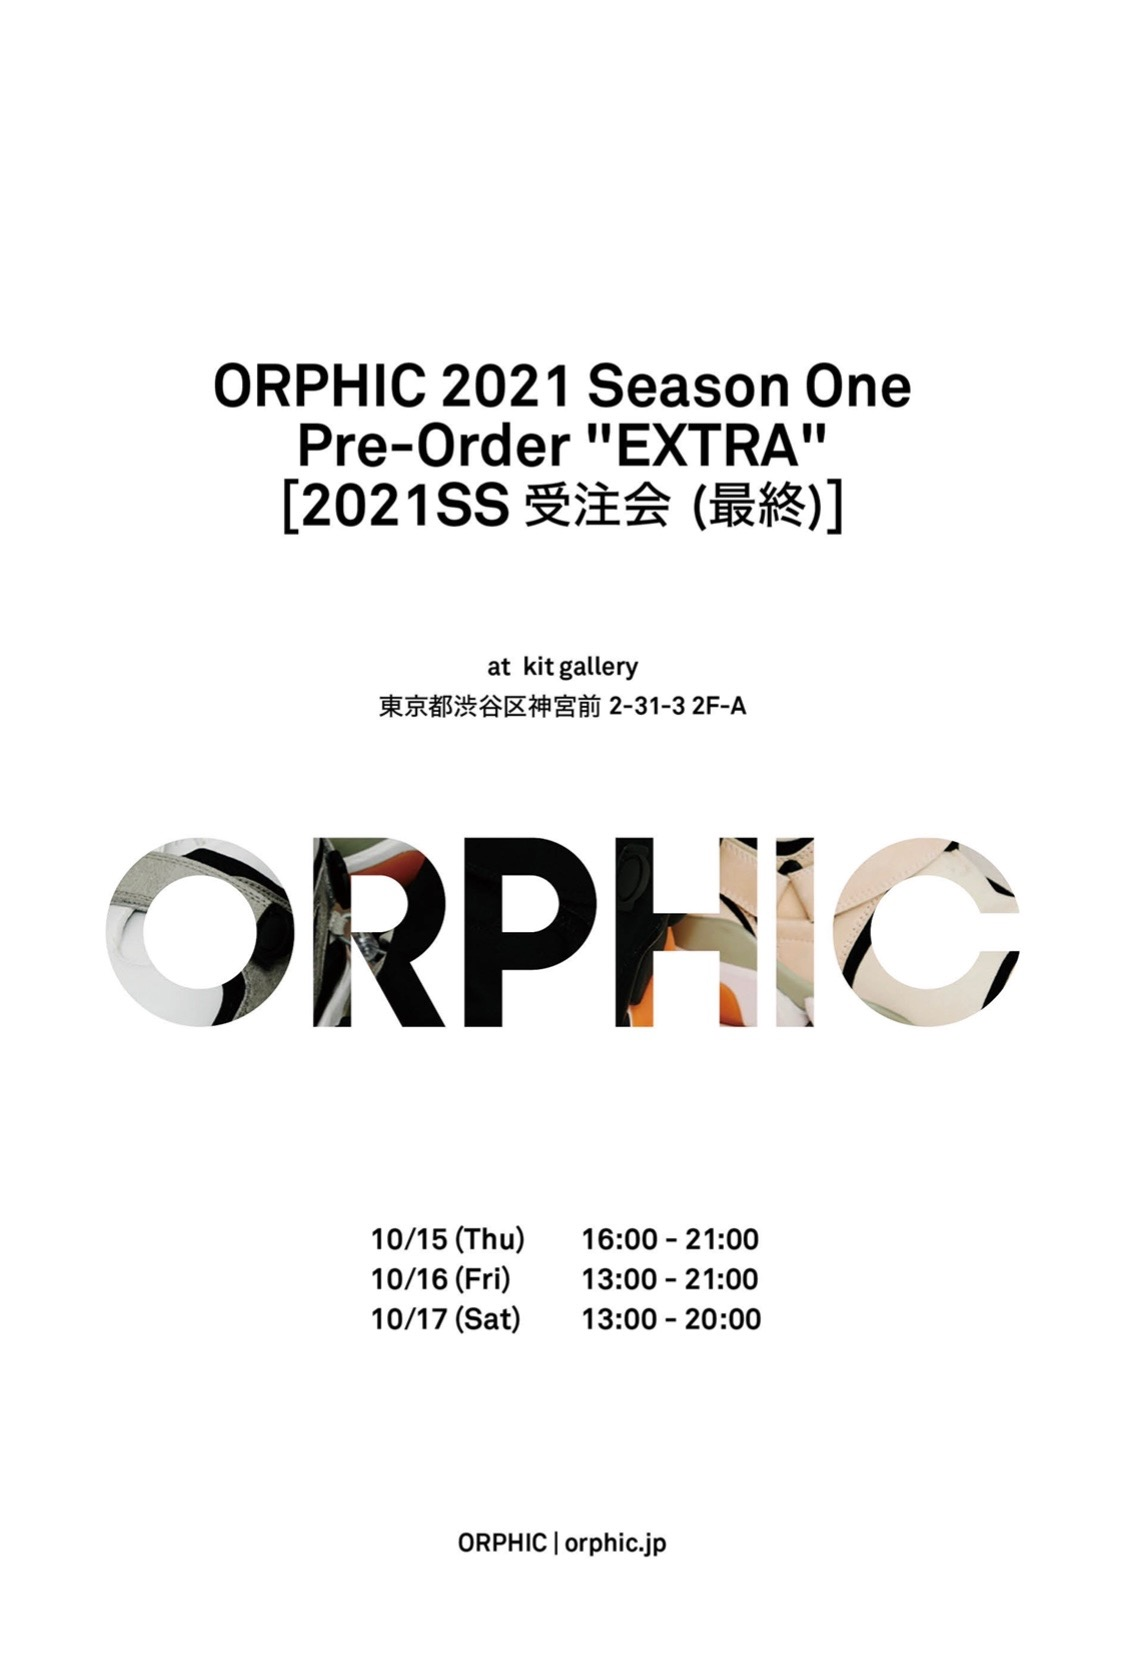 http://kit-gallery.com/schedule/files/orphic.jpeg